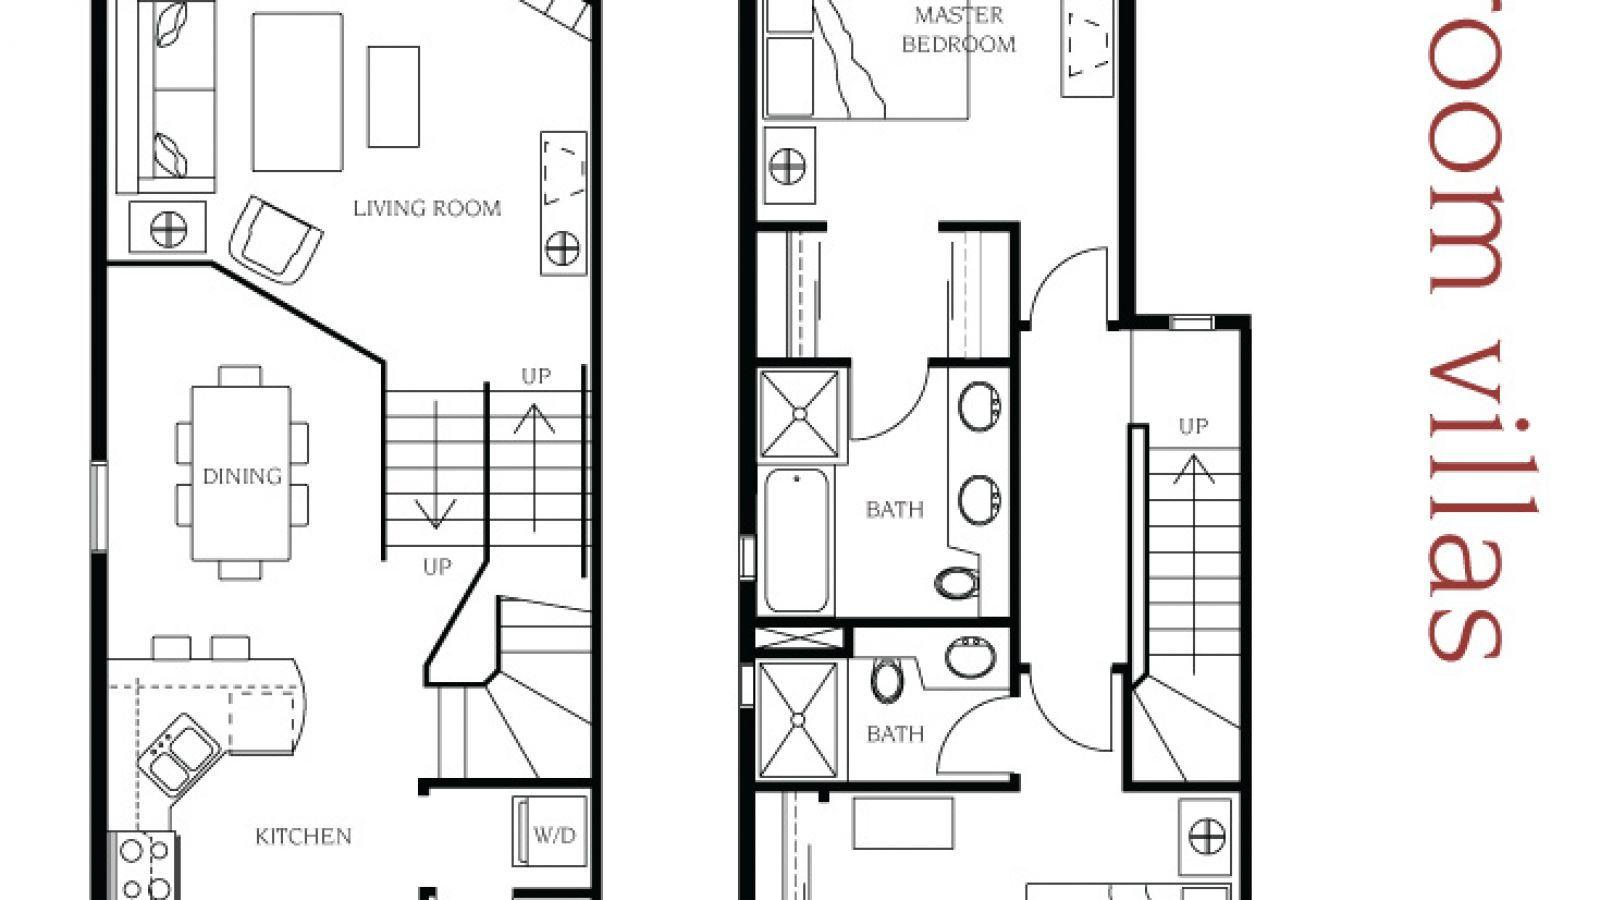 2 bedroom villa floor plan at Manteo